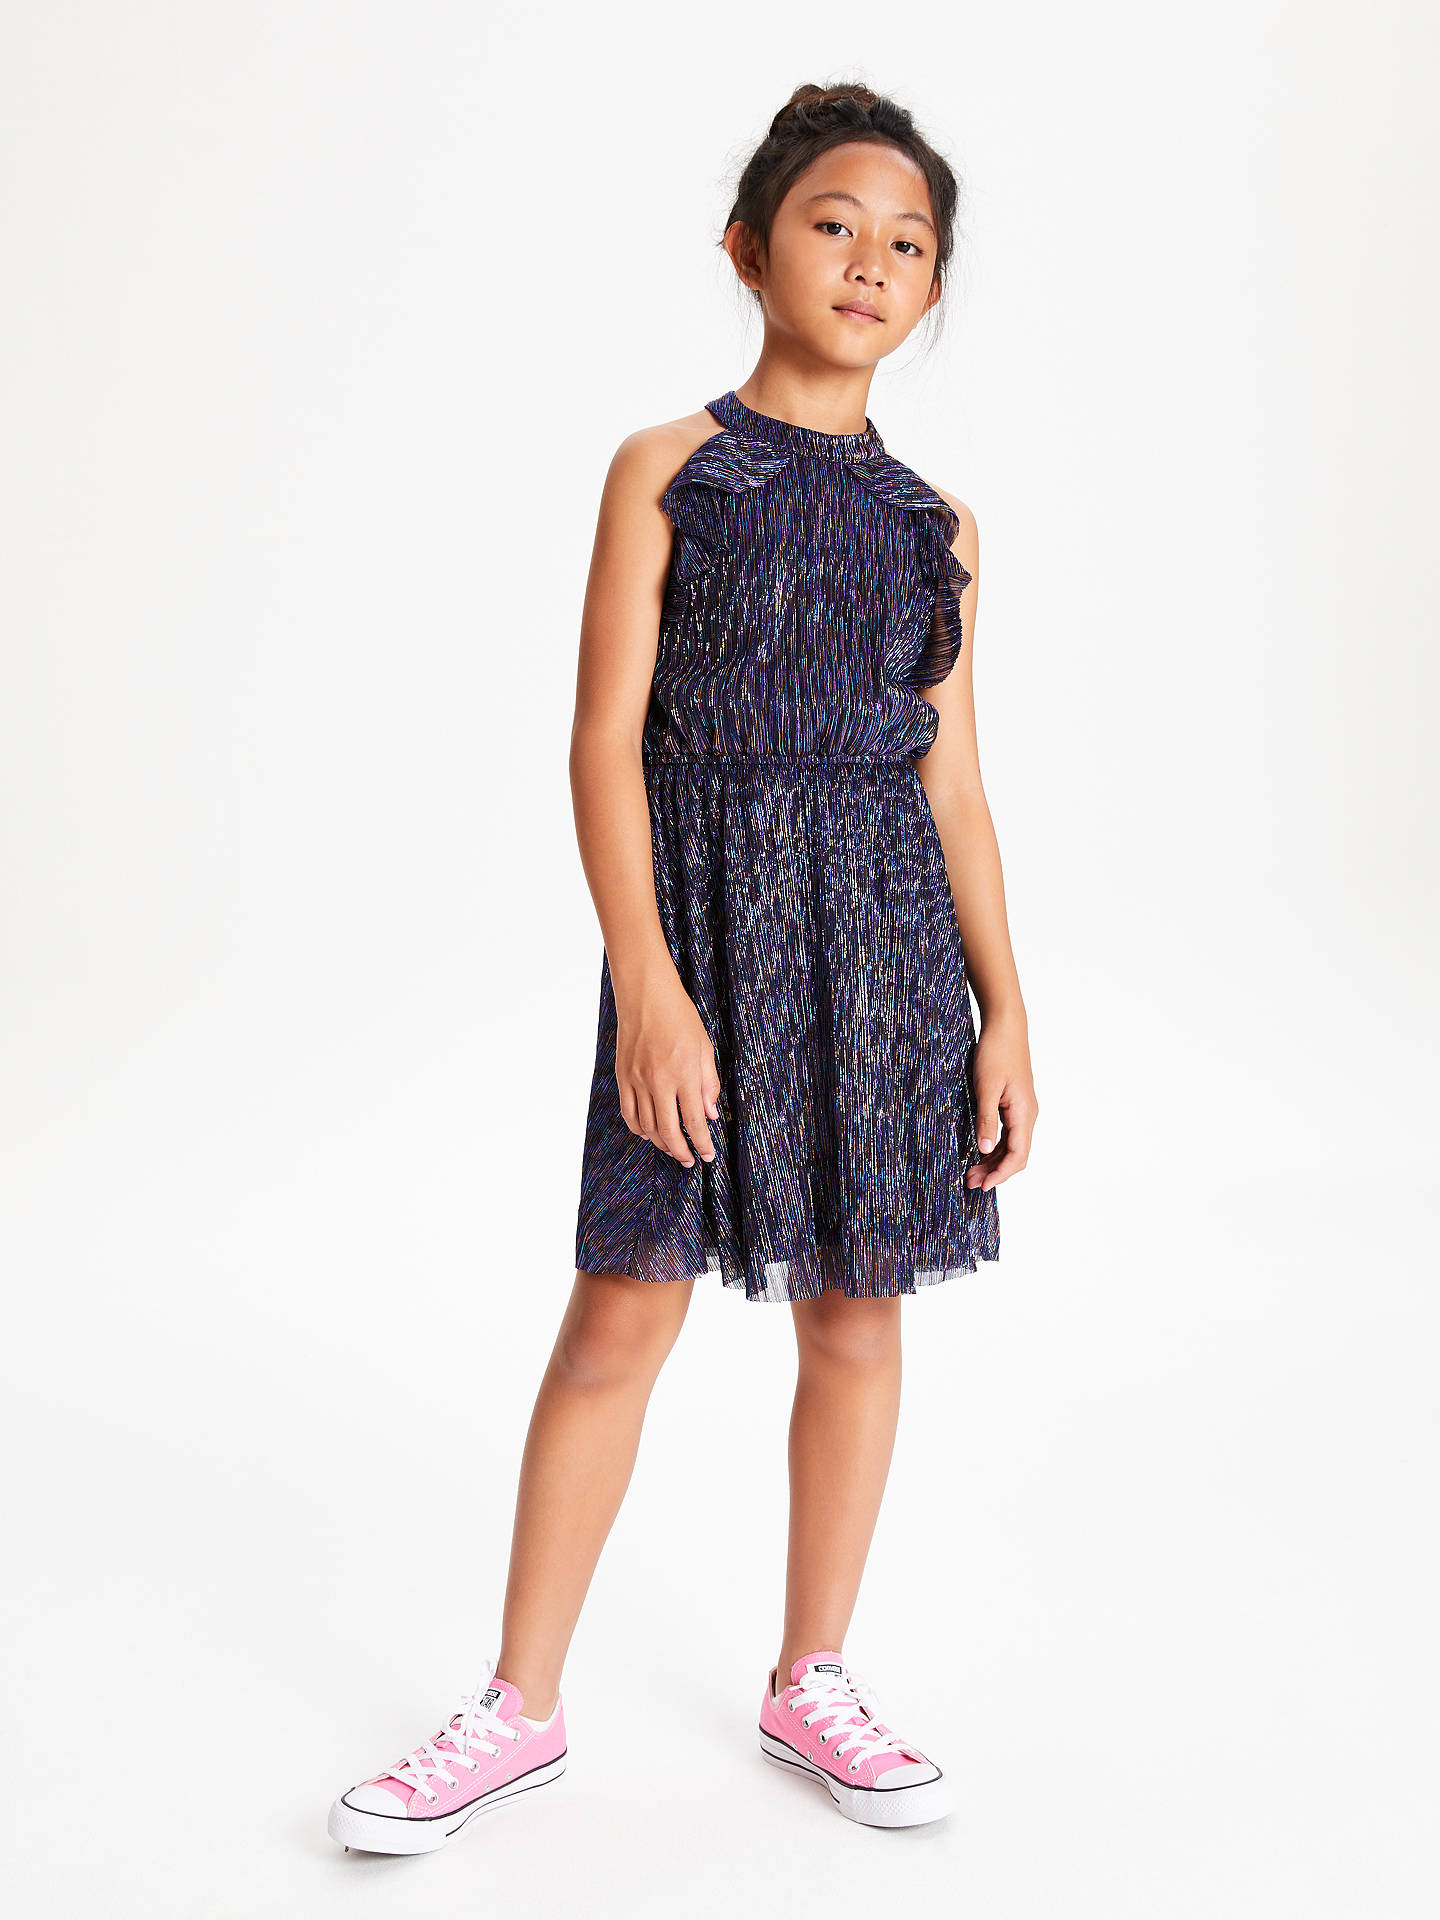 BuyJohn Lewis & Partners Girls' Sparkle Dress, Multi, 8 years Online at johnlewis.com